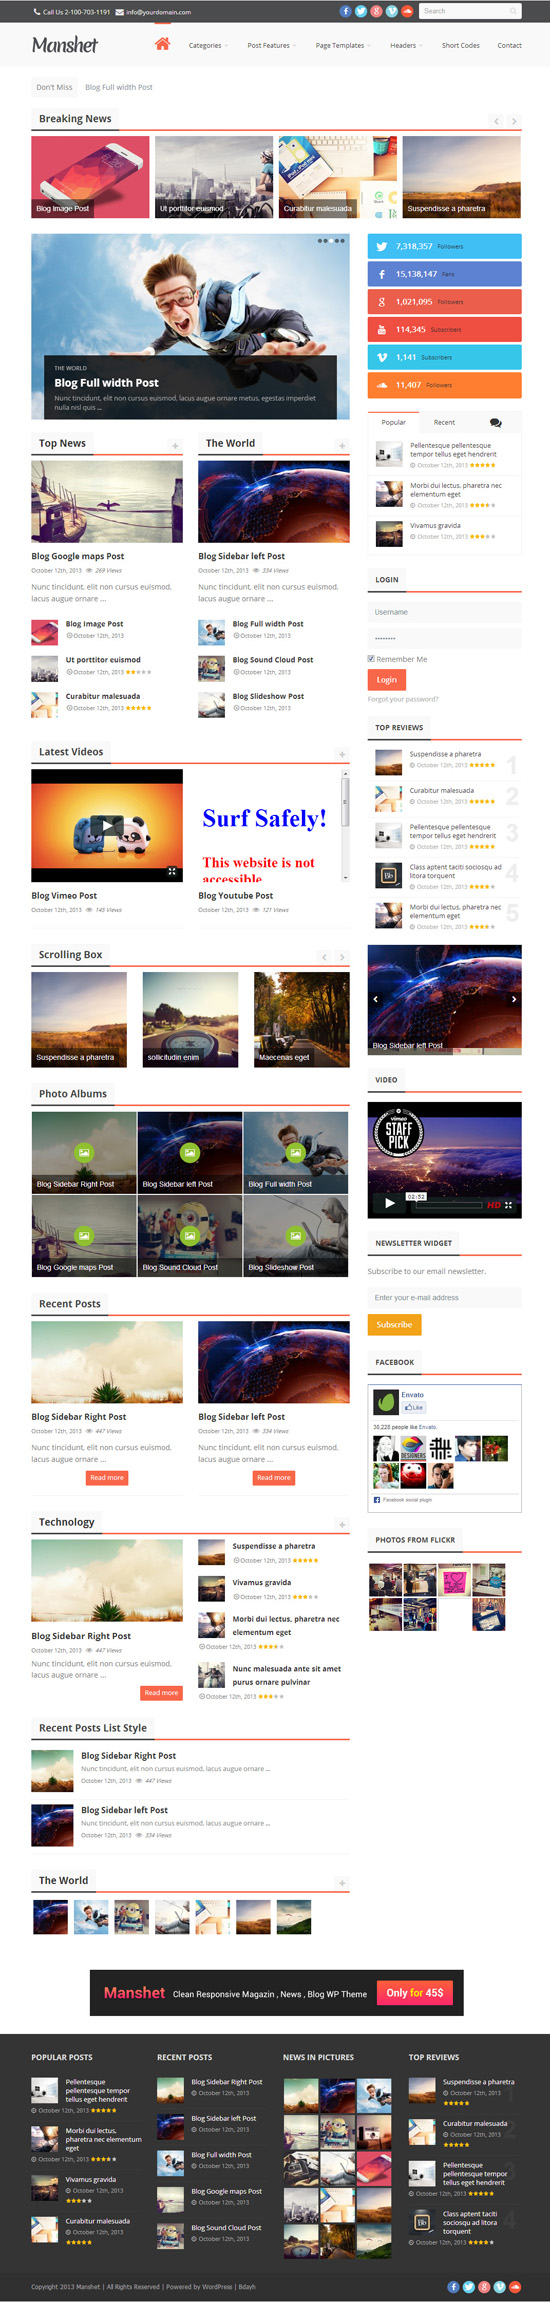 Manshet - Retina Responsive WordPress News, Magazine Theme